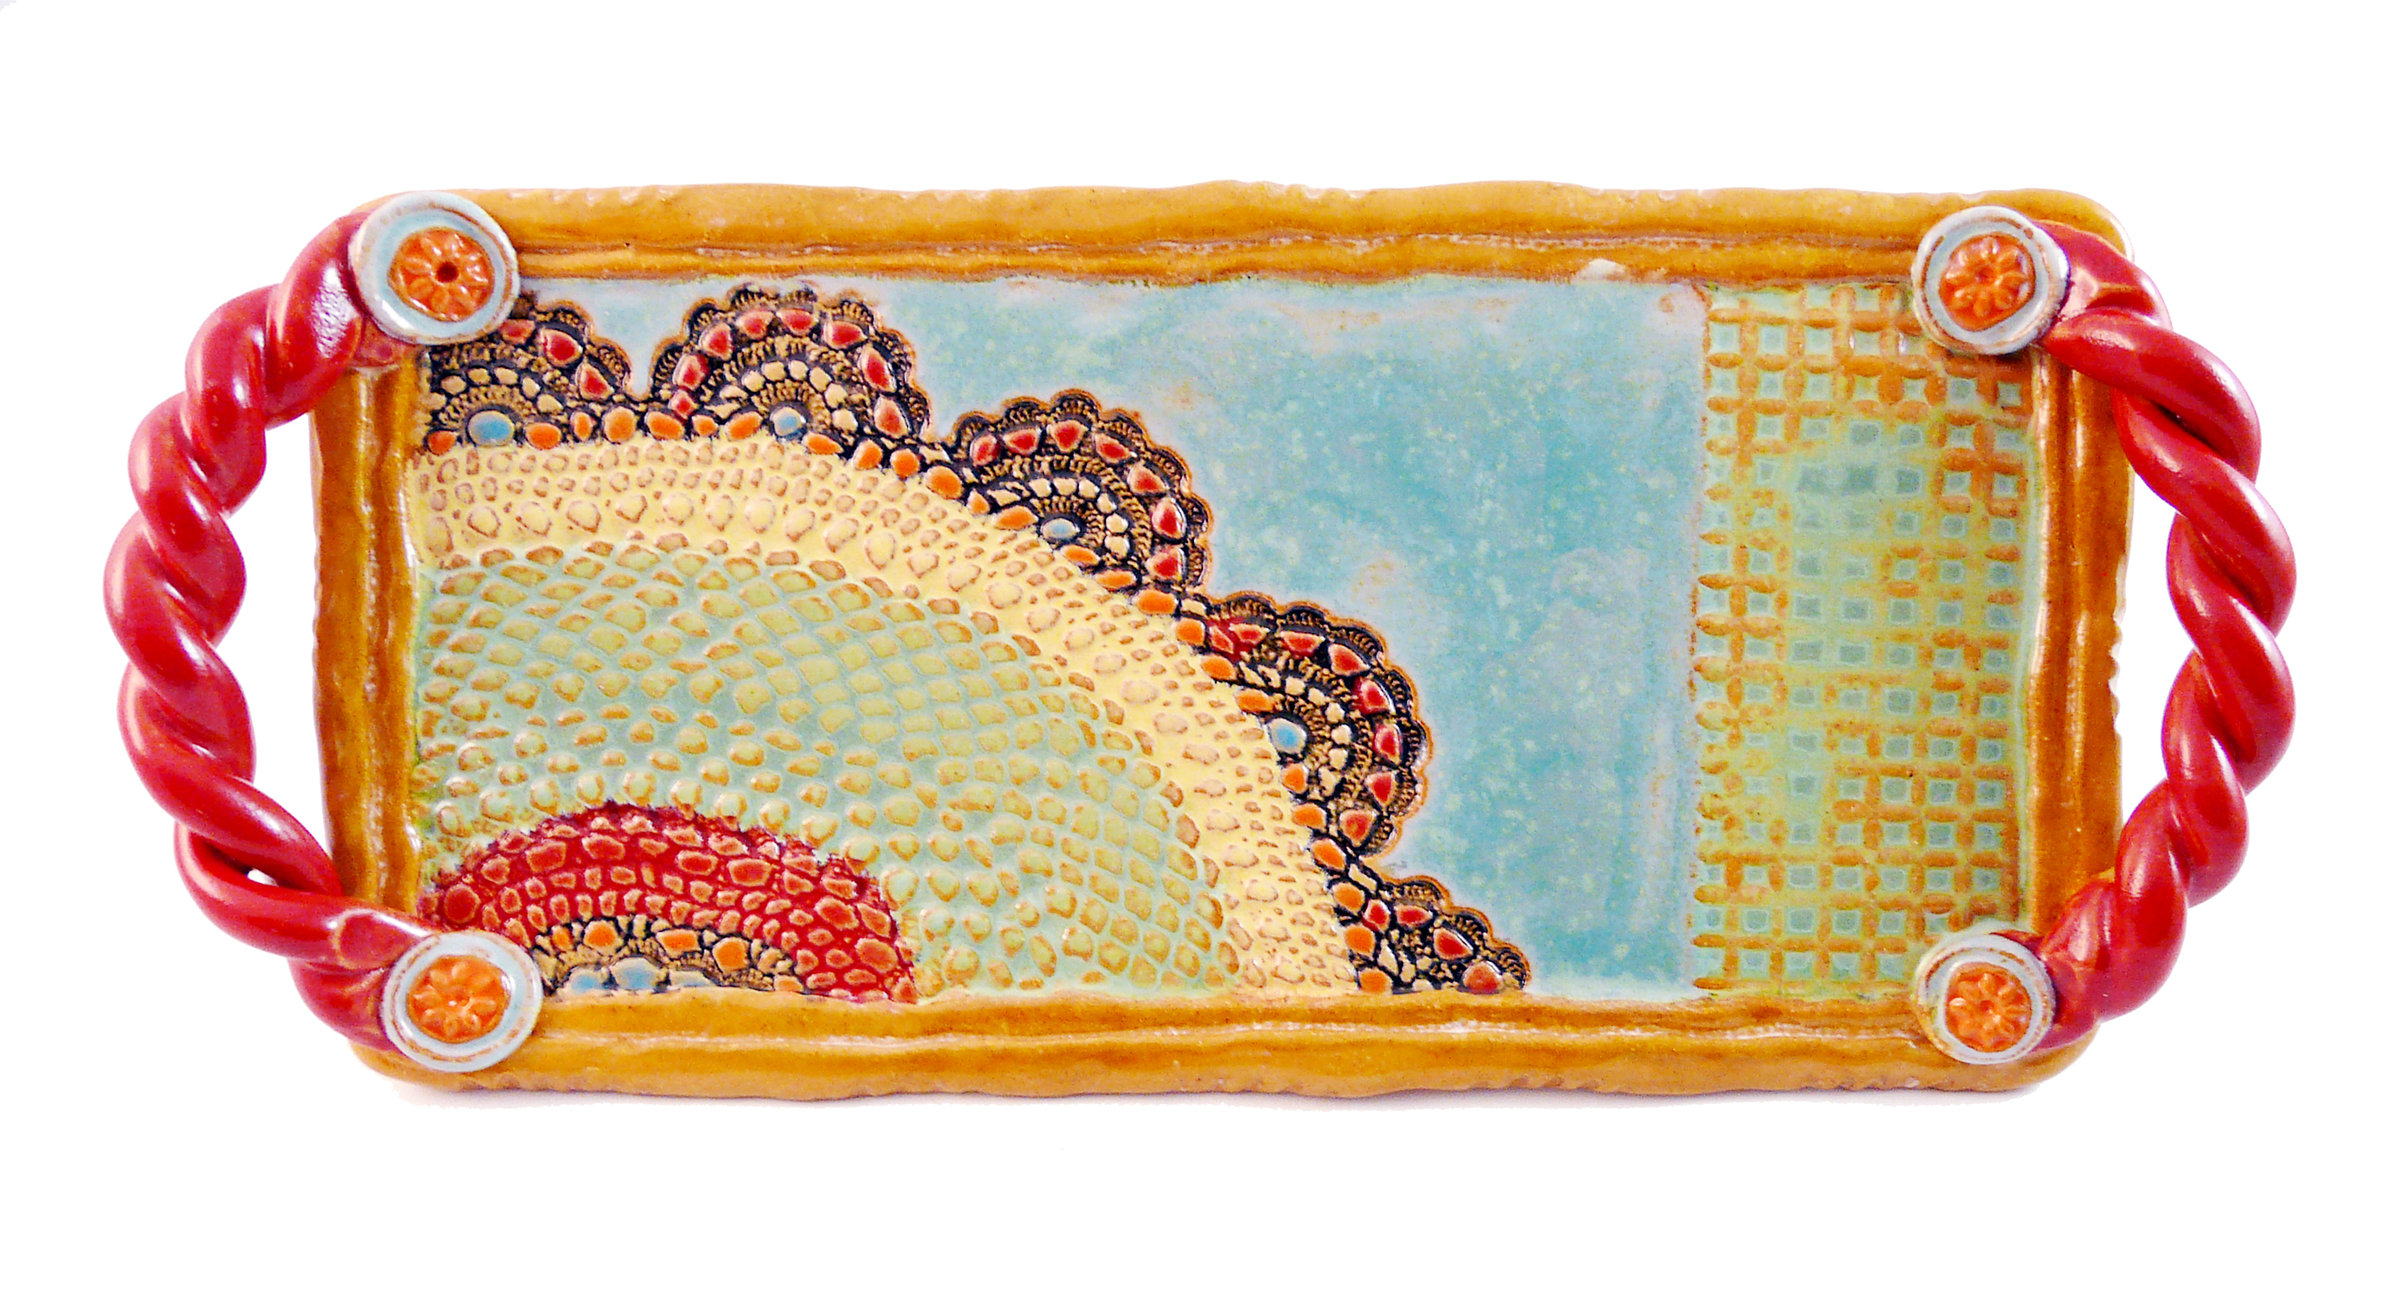 Esperanza Rainbow Tray By Laurie Pollpeter Eskenazi